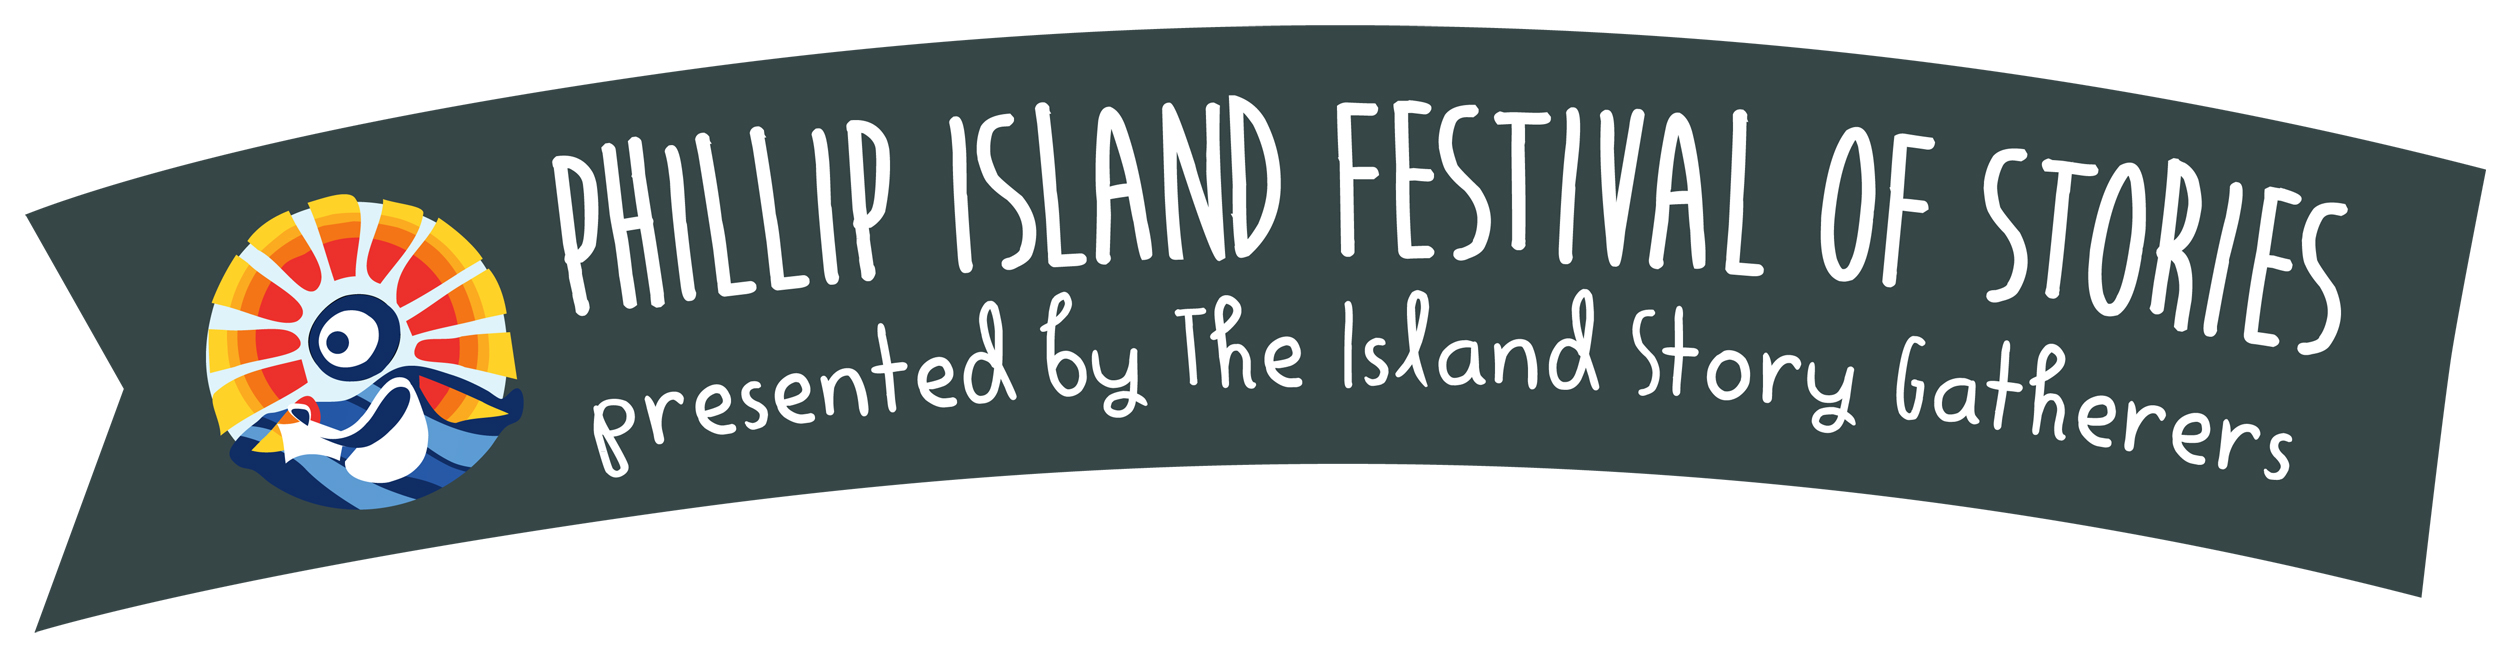 2019 Phillip Island Festival of Stories